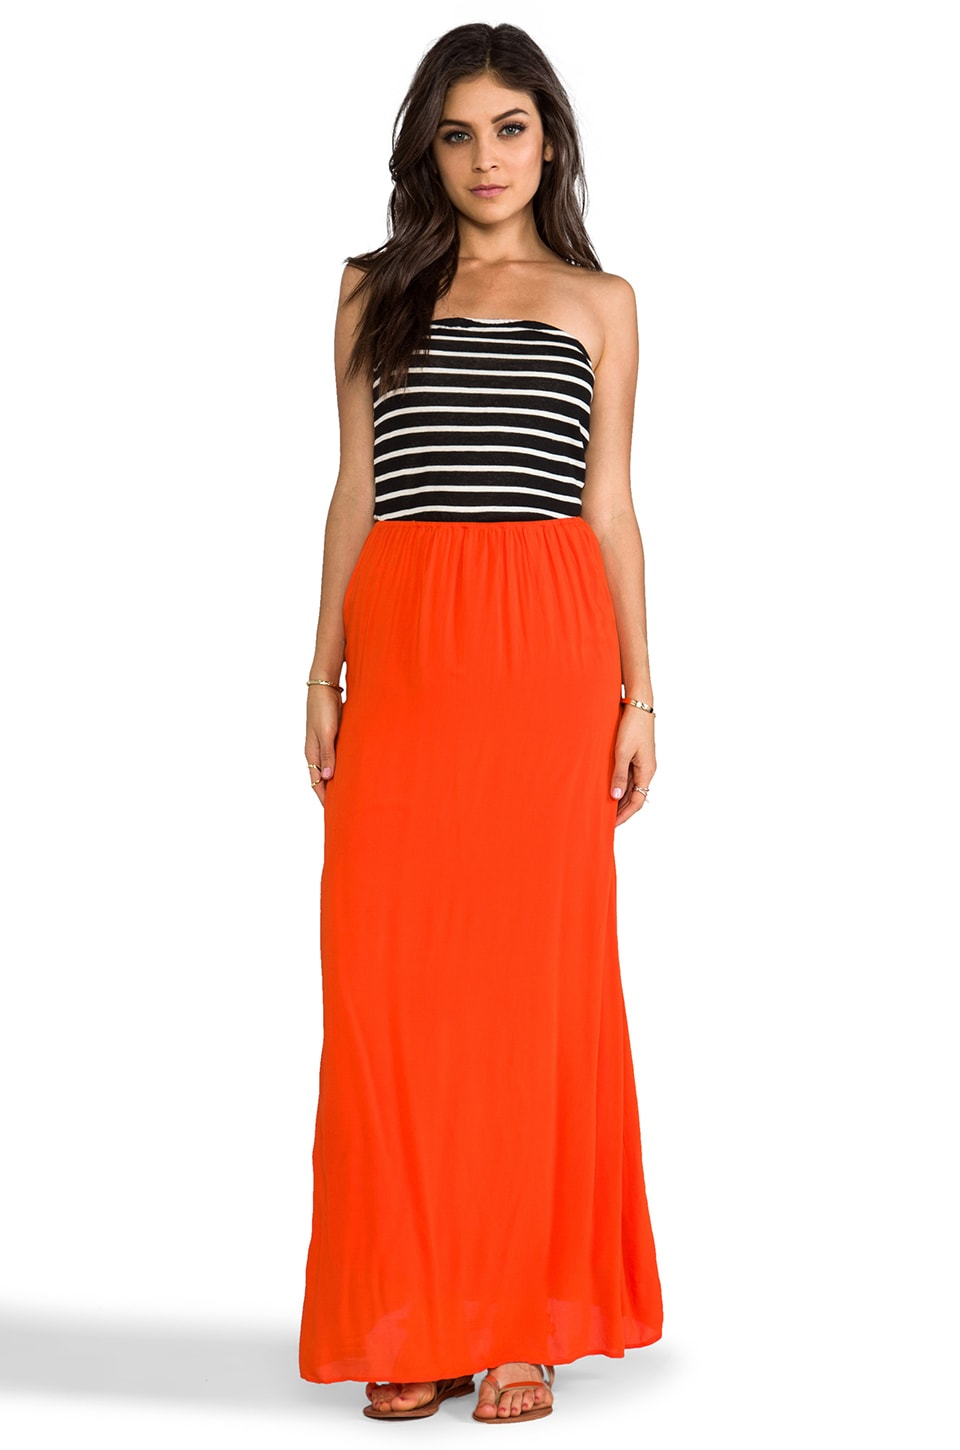 WOODLEIGH Alexa Strapless Maxi in Black & White Blood Orange